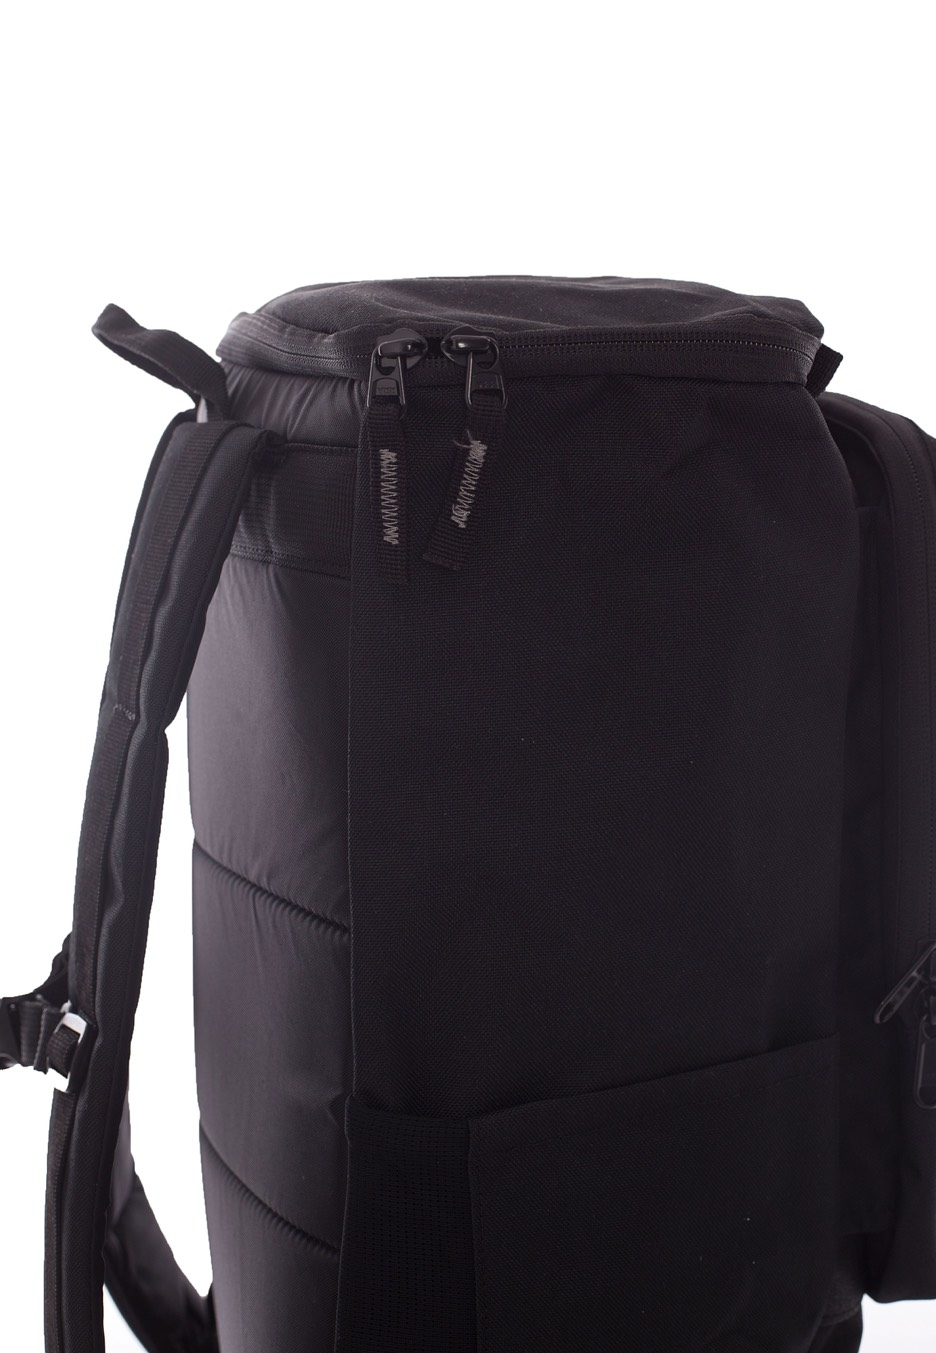 bd3762b89a005 Dakine Park Pack  Perfect Backpack for Skateboarders - Best .